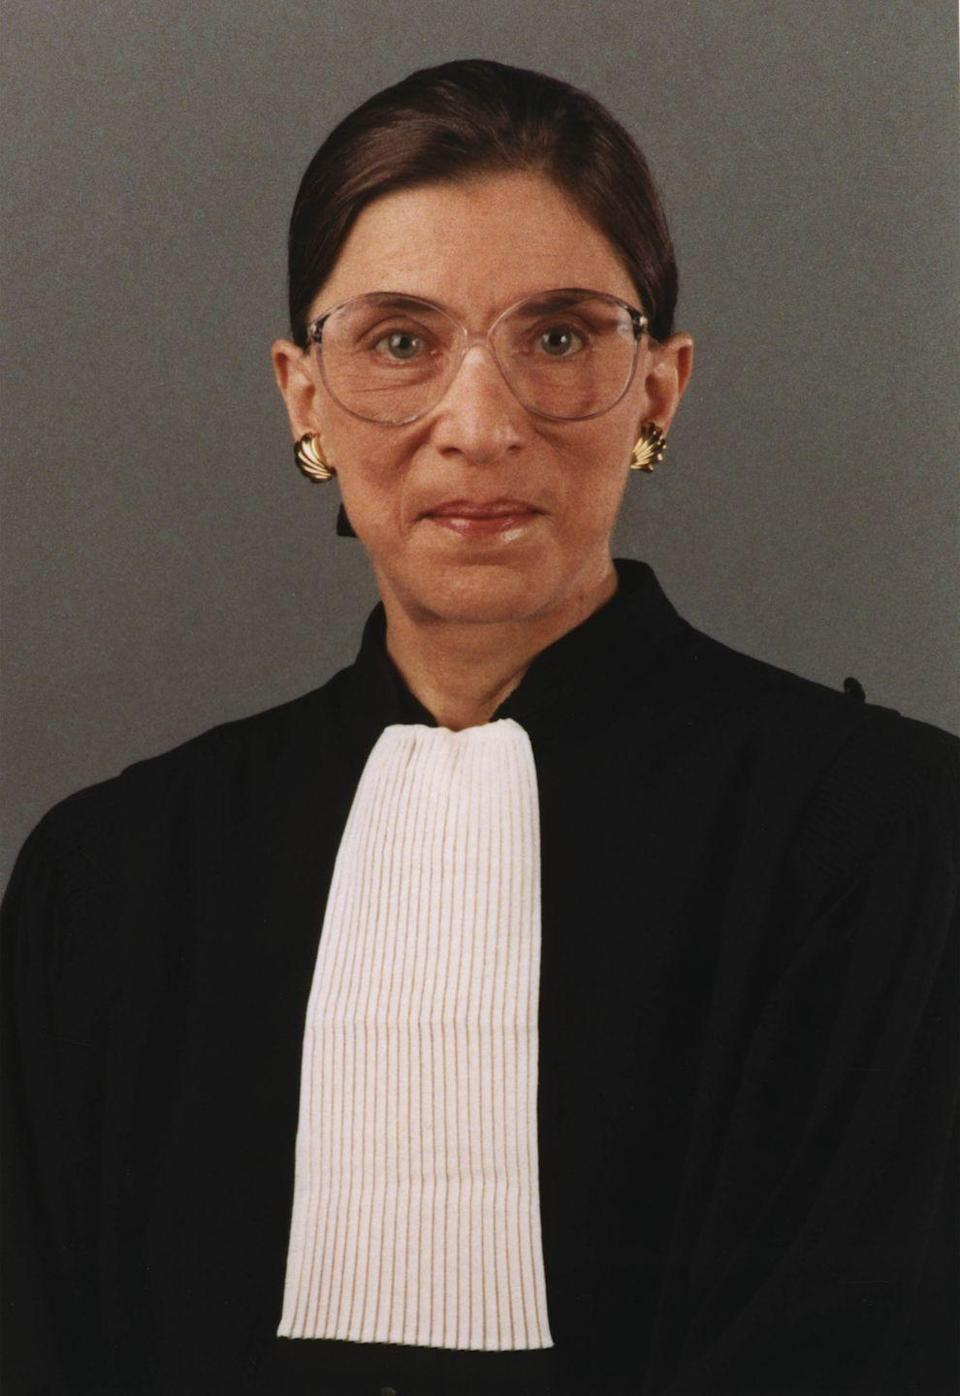 "<p>While most Supreme Court judges simply wear black robes, Ginsburg chose to add a little flair to hers with collars—just like Justice Sandra Day O'Connor, the first woman on the bench, did. </p><p>Ginsburg also used her <a href=""https://www.cnn.com/style/article/ruth-bader-ginsburg-collars/index.html"" rel=""nofollow noopener"" target=""_blank"" data-ylk=""slk:collars as symbols"" class=""link rapid-noclick-resp"">collars as symbols</a> for court cases and current events. She had an embellished gold collar for when she was in the majority vote and a ""dissenting"" collar that was dark, beaded, and looked like armor for when she was not in the majority. <a href=""https://www.nbcnews.com/storyline/2016-election-day/justice-ginsburg-wears-dissent-collar-following-contentious-election-n681571"" rel=""nofollow noopener"" target=""_blank"" data-ylk=""slk:The day after Donald Trump was elected, Ginsburg wore her &quot;dissenting&quot; collar."" class=""link rapid-noclick-resp"">The day after Donald Trump was elected, Ginsburg wore her ""dissenting"" collar.</a><br></p>"